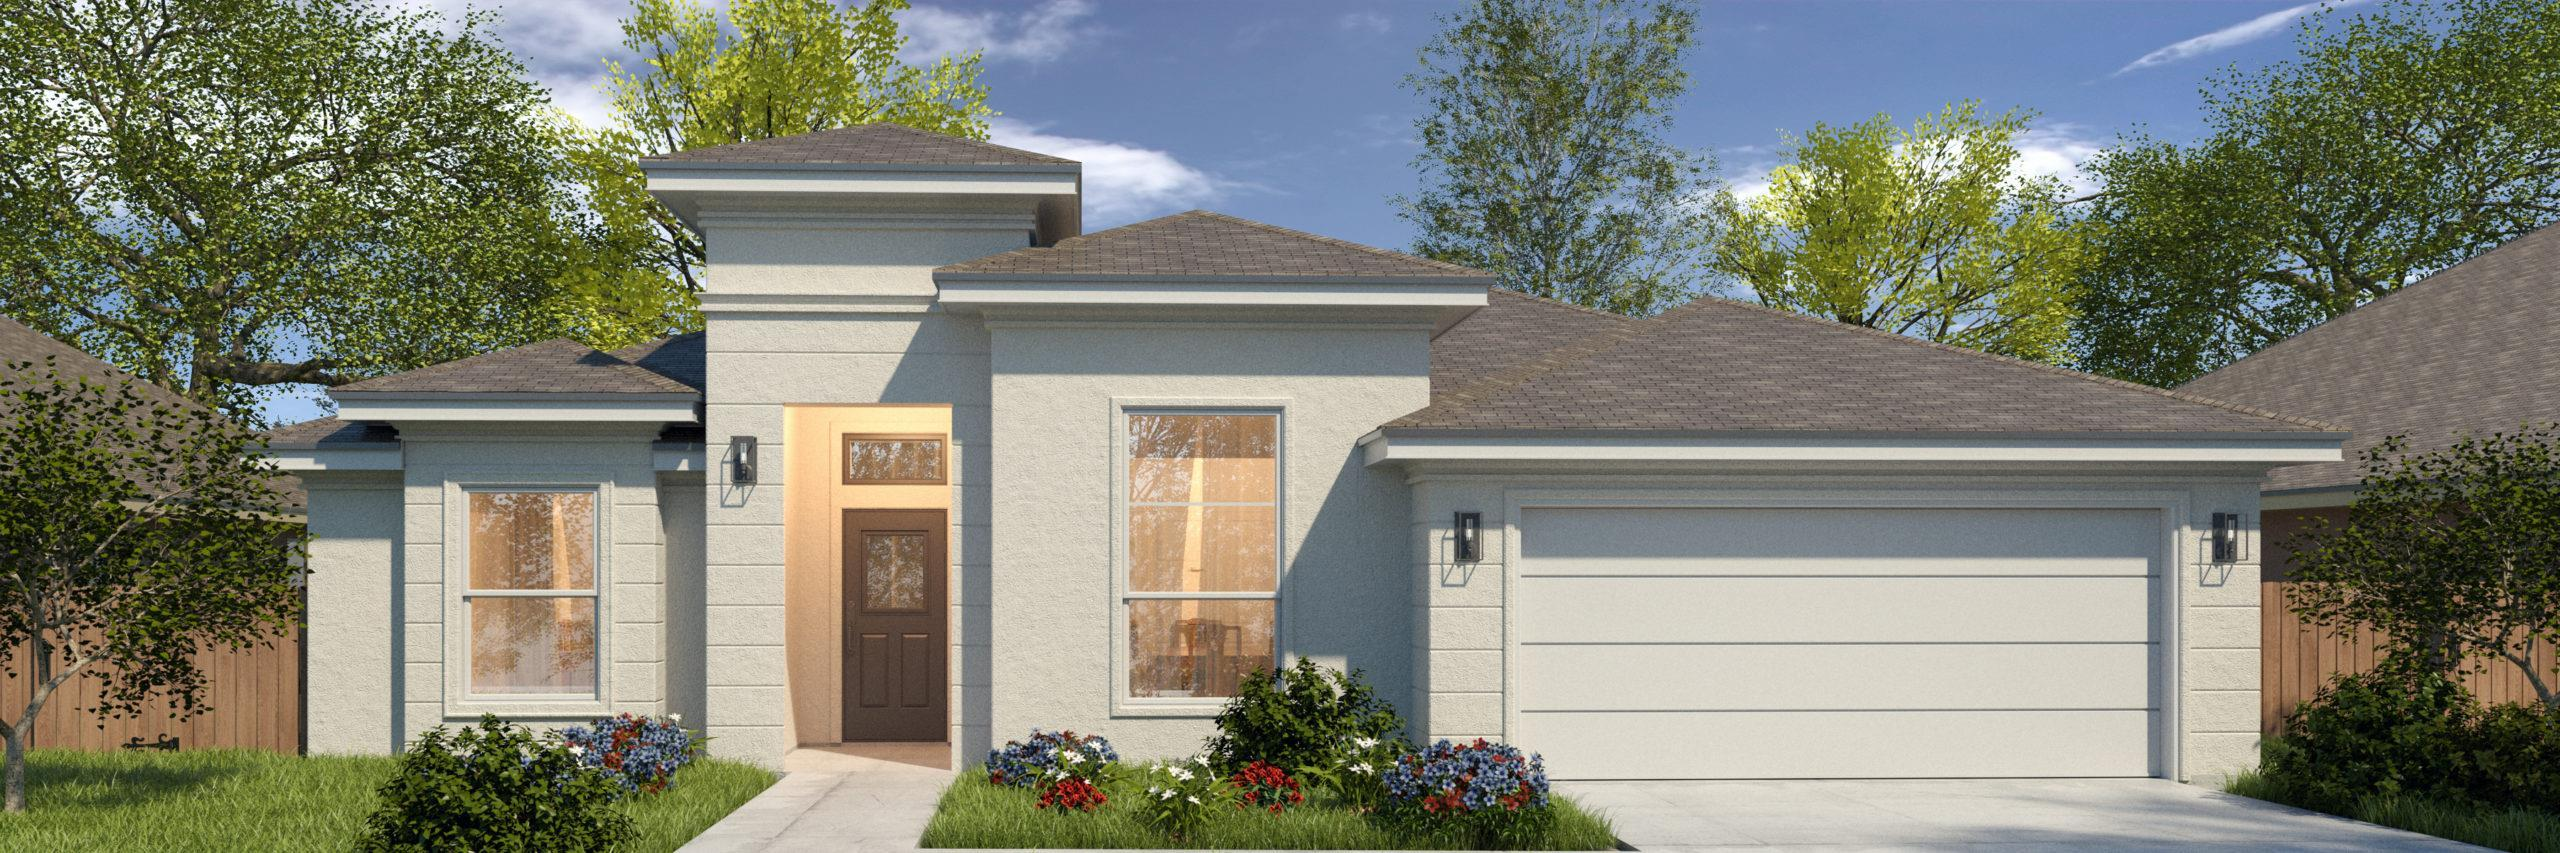 Exterior featured in the Victoria II By WestWind Homes in Rio Grande Valley, TX